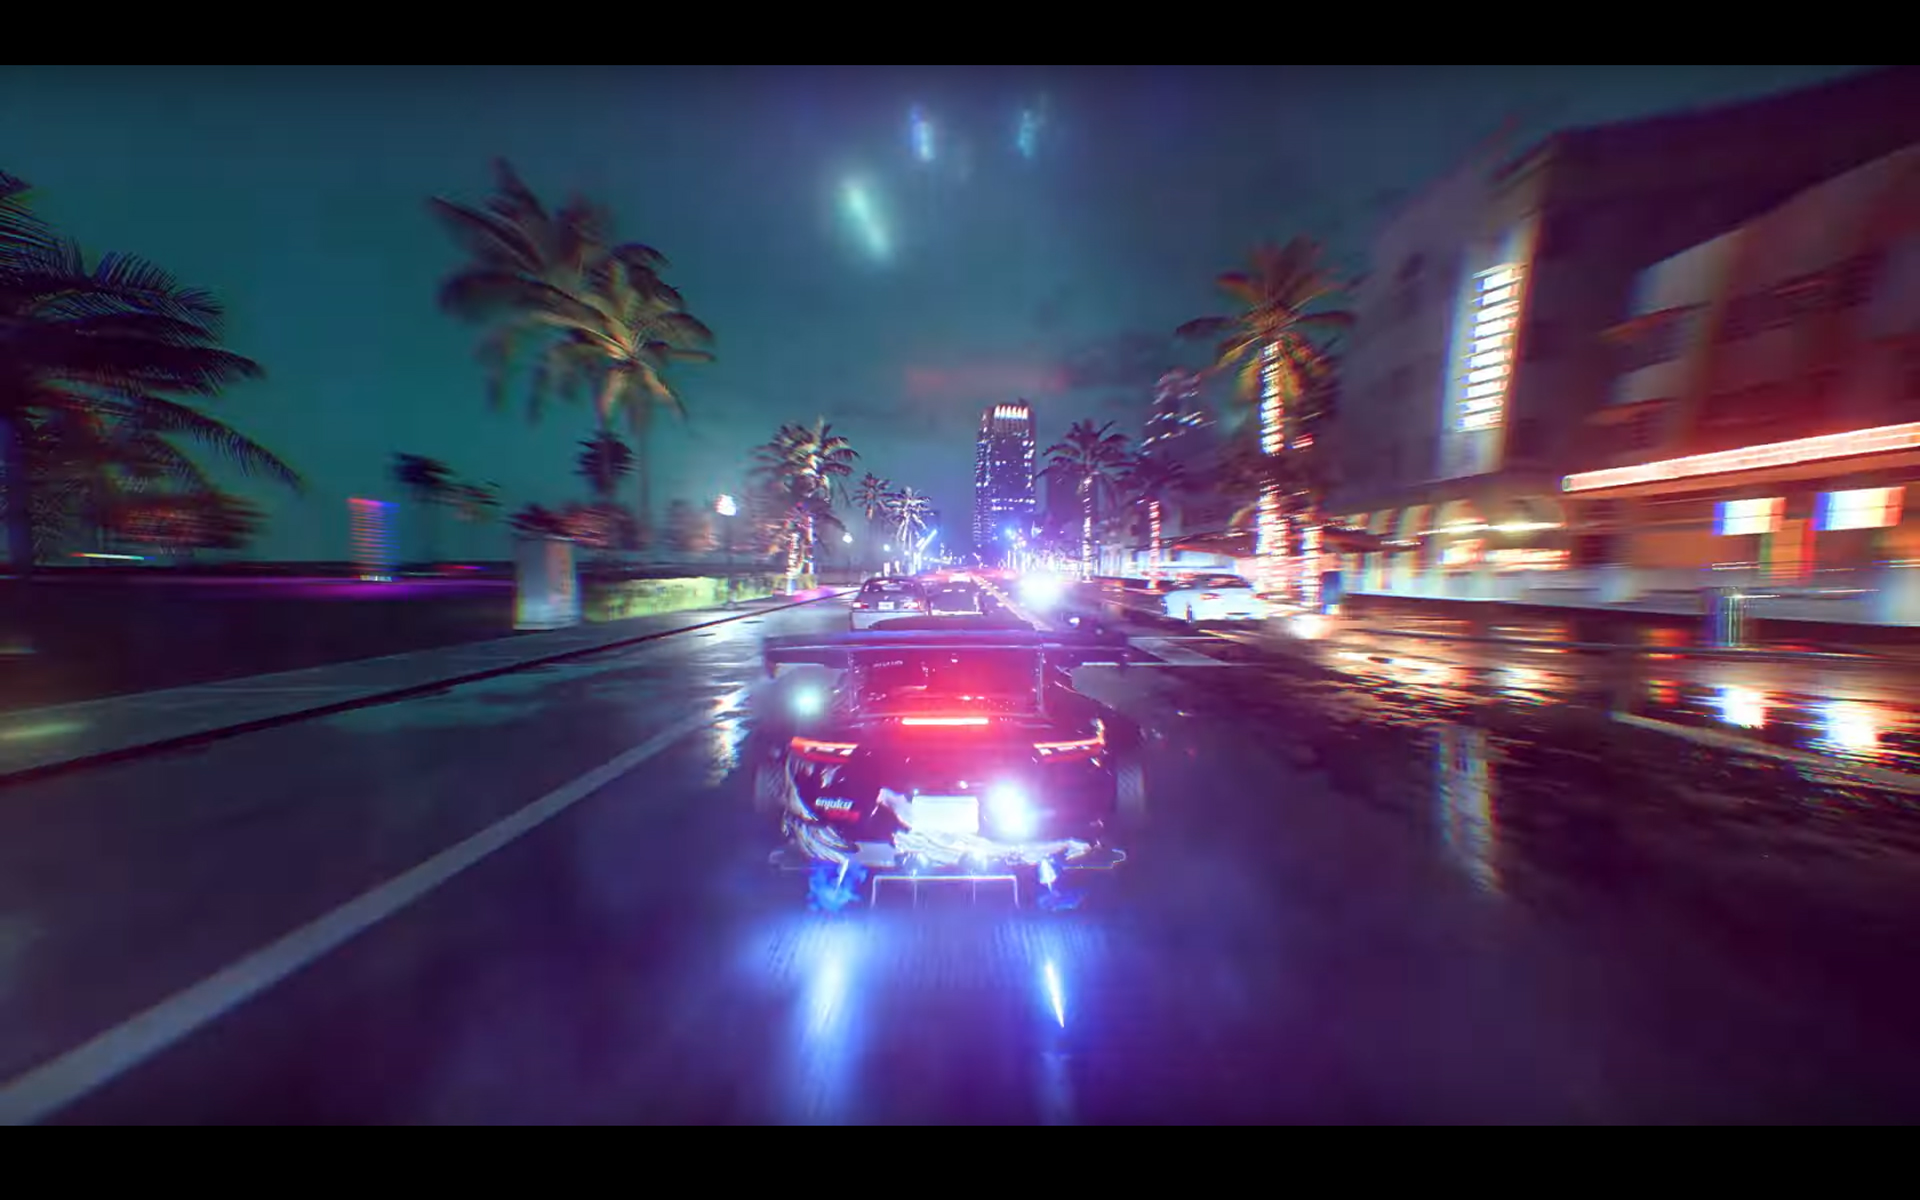 NFS-Heat-2019-screen-trailer-Porsche-rear-night-underground-racing